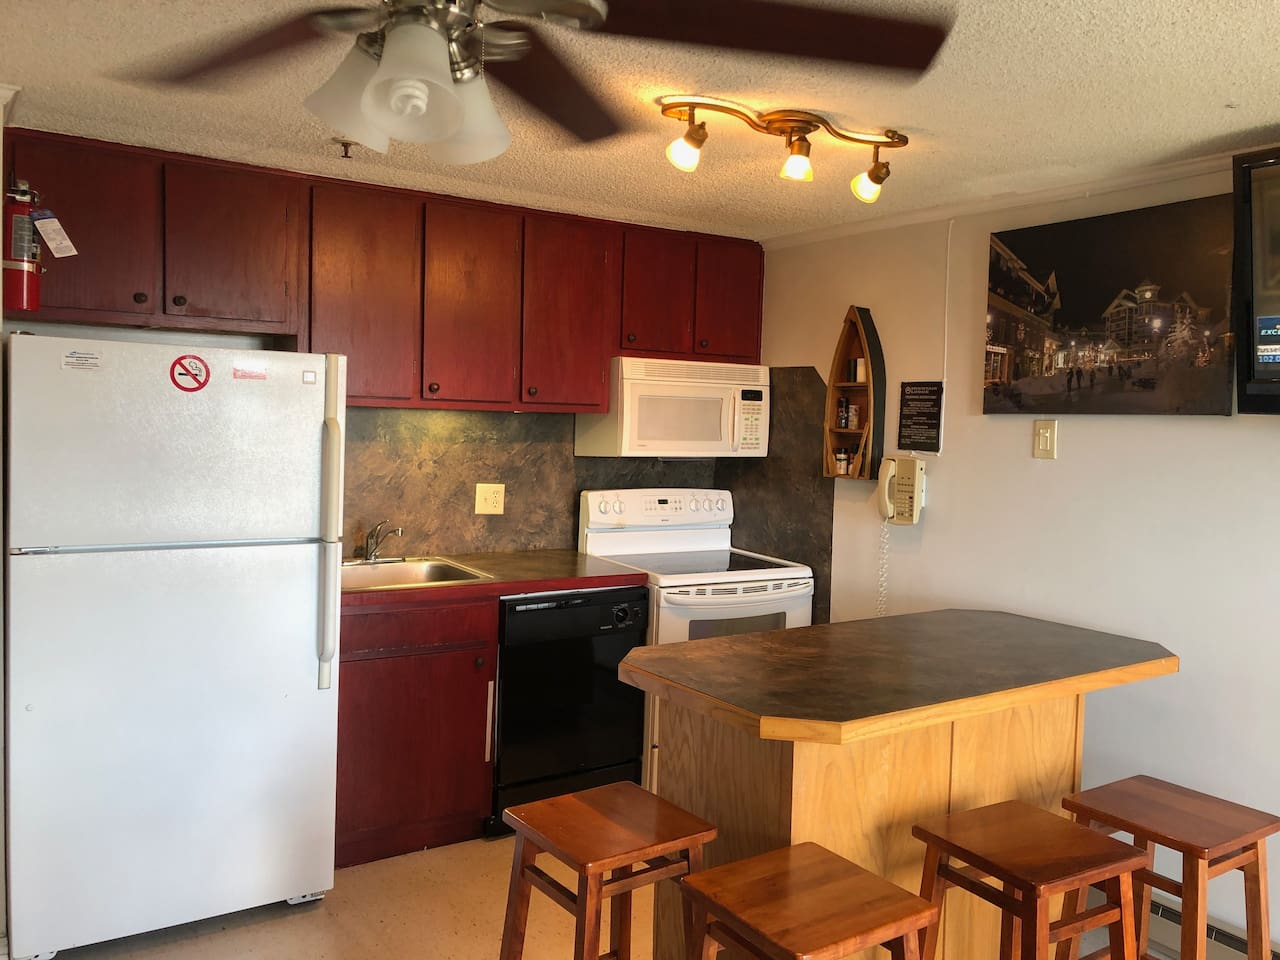 Newly Renovated Kitchen, Island and Cabinetry!